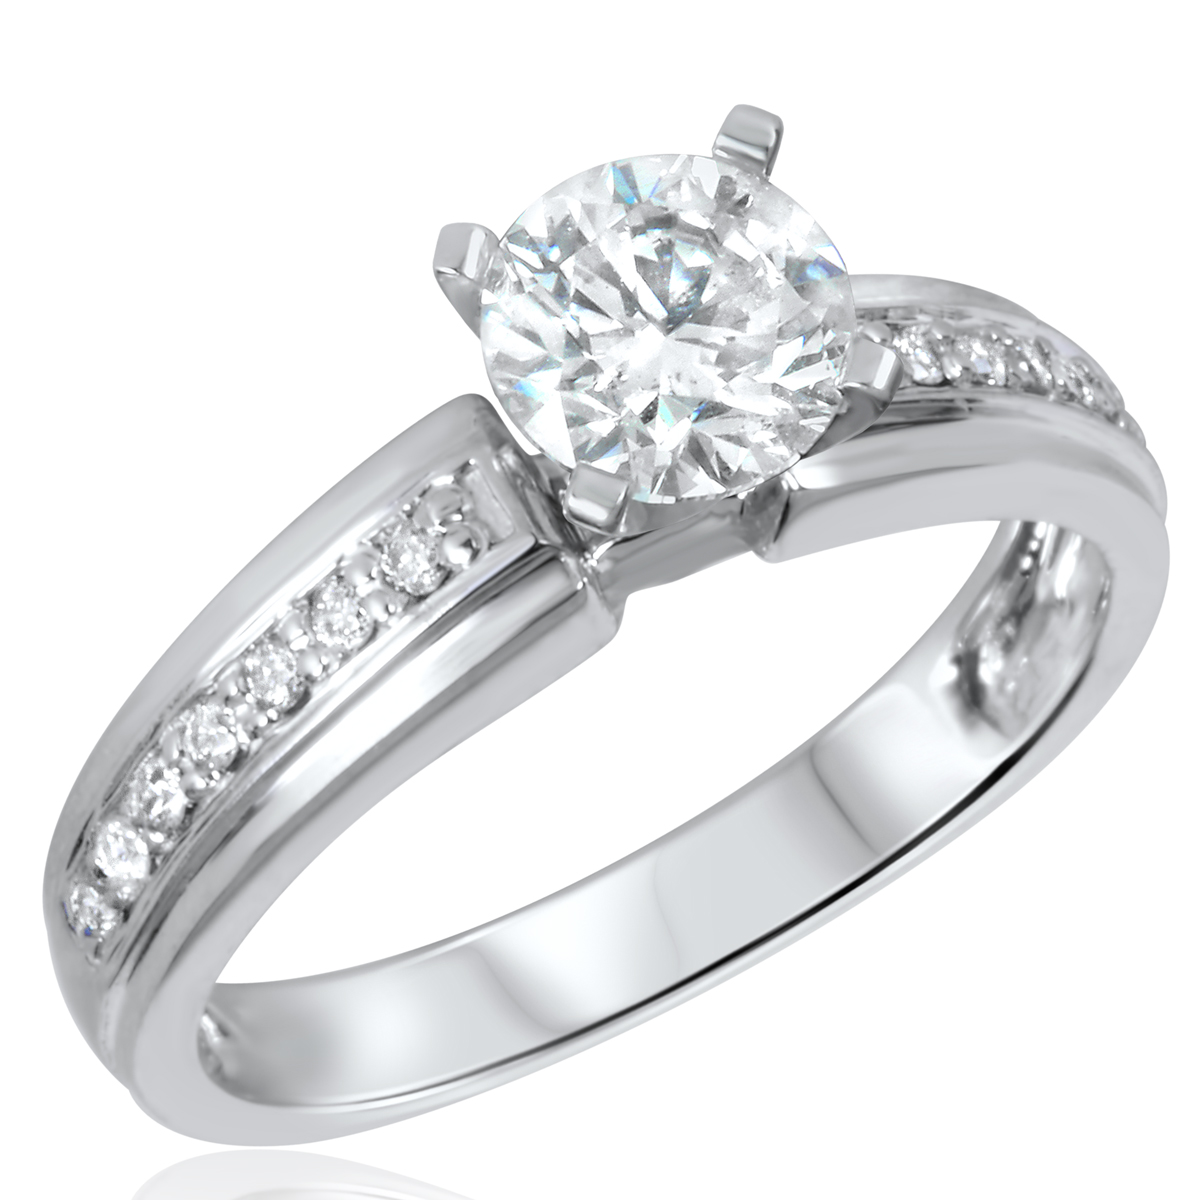 1 1/7 CT. T.W. Diamond Ladies Engagement Ring 14K White Gold